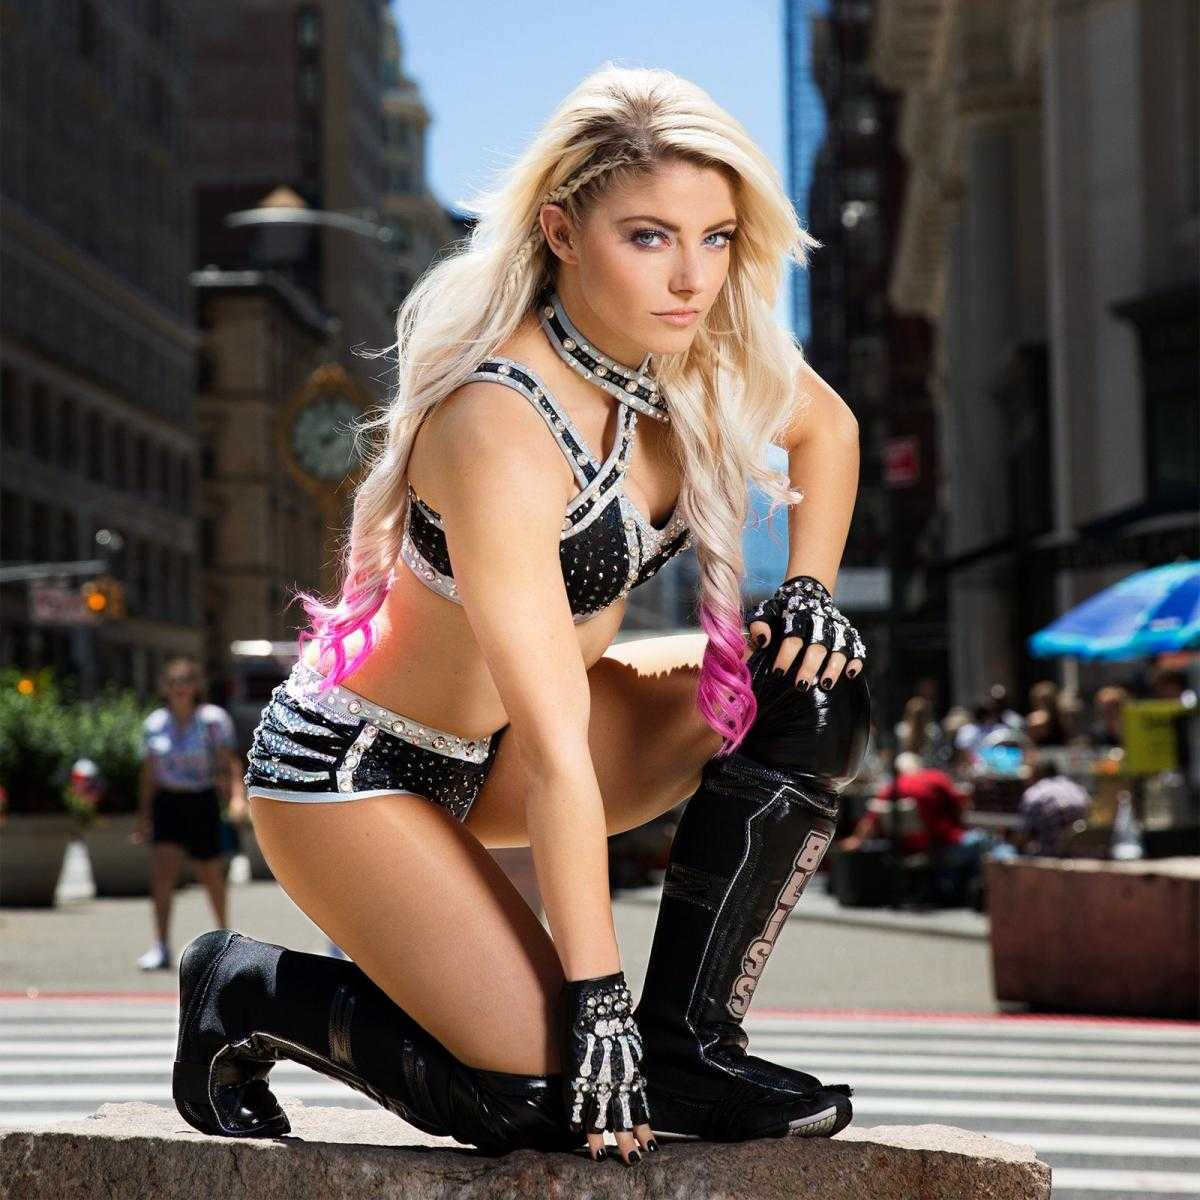 Topic has wwe neked all girl apologise, that